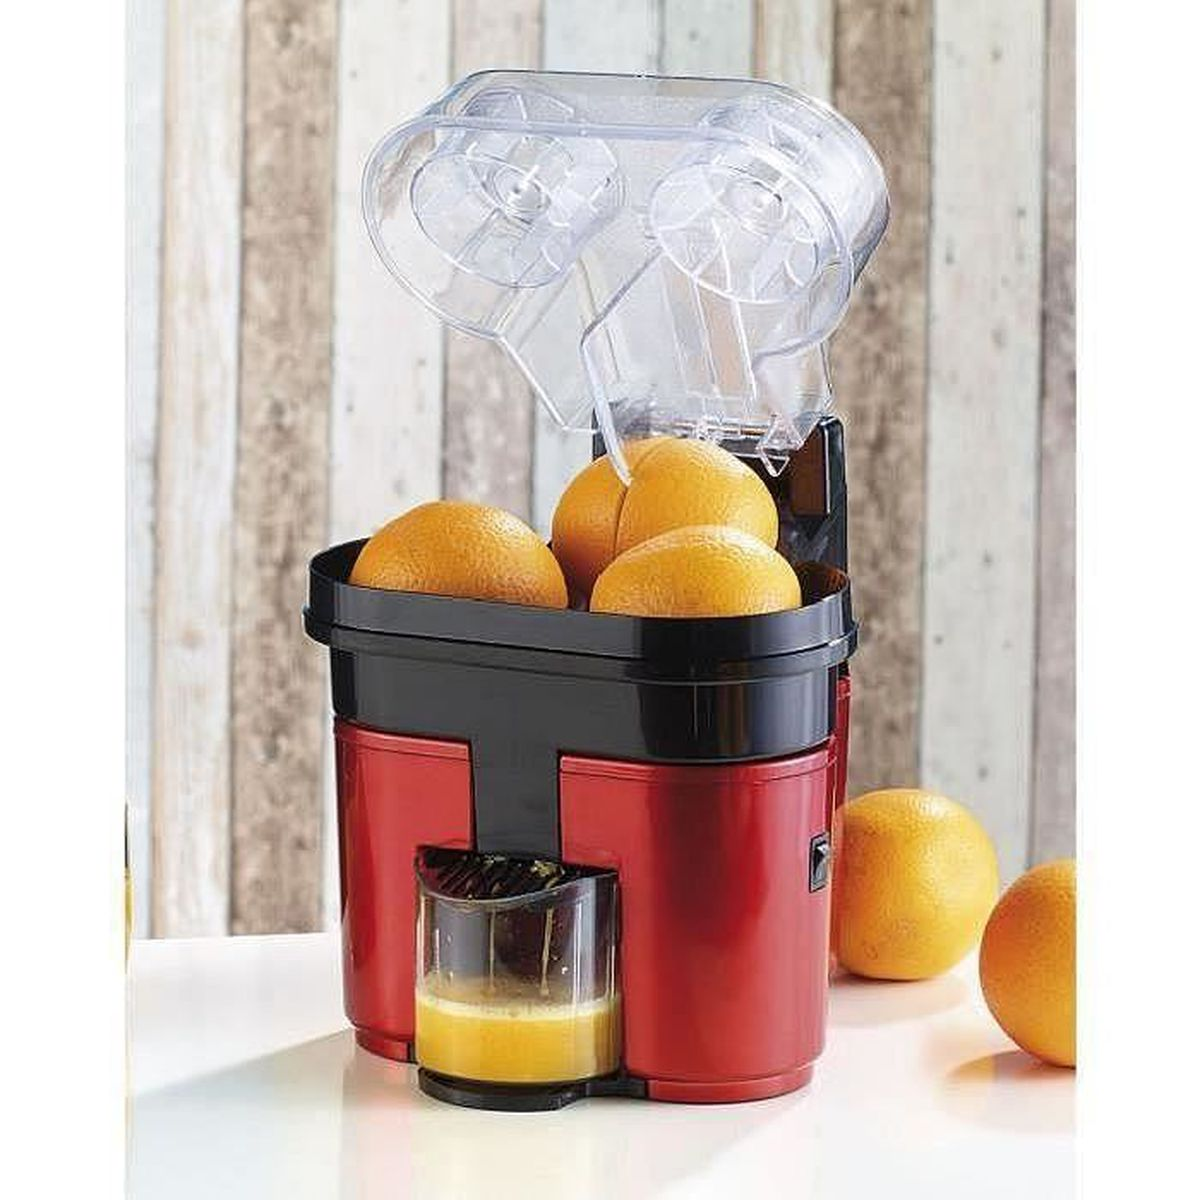 Double presse agrumes a coupe automatique jus de fruits - Extracteur de jus moulinex zu255b10 ...